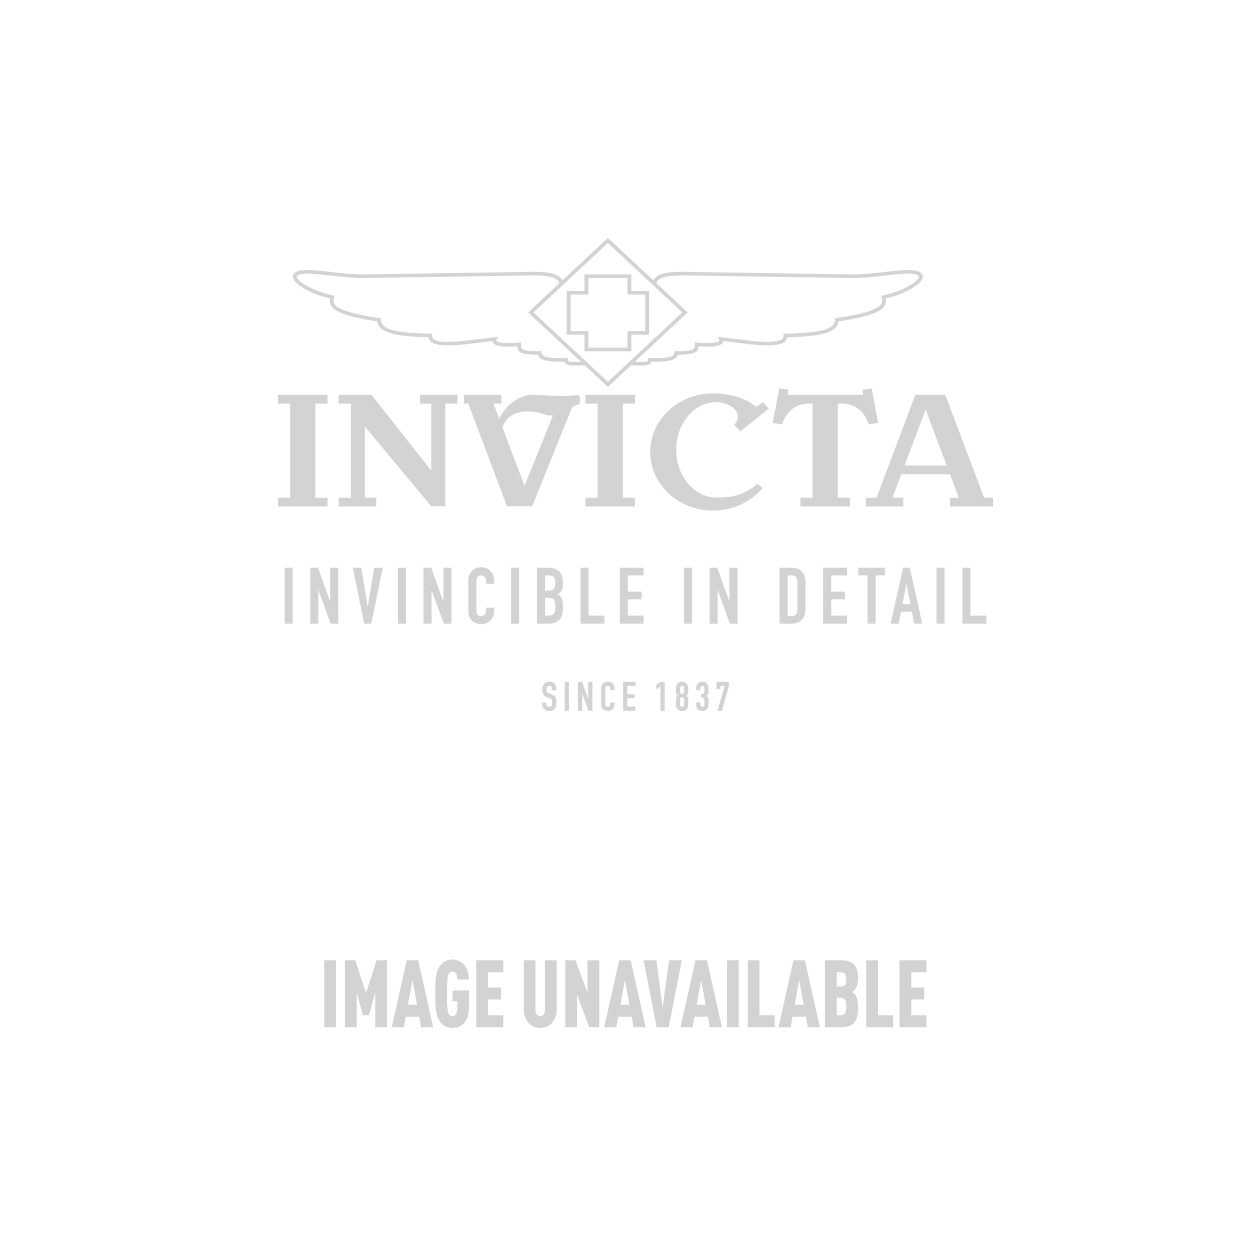 Invicta Angel Swiss Movement Quartz Watch - Stainless Steel case Stainless Steel band - Model 11769